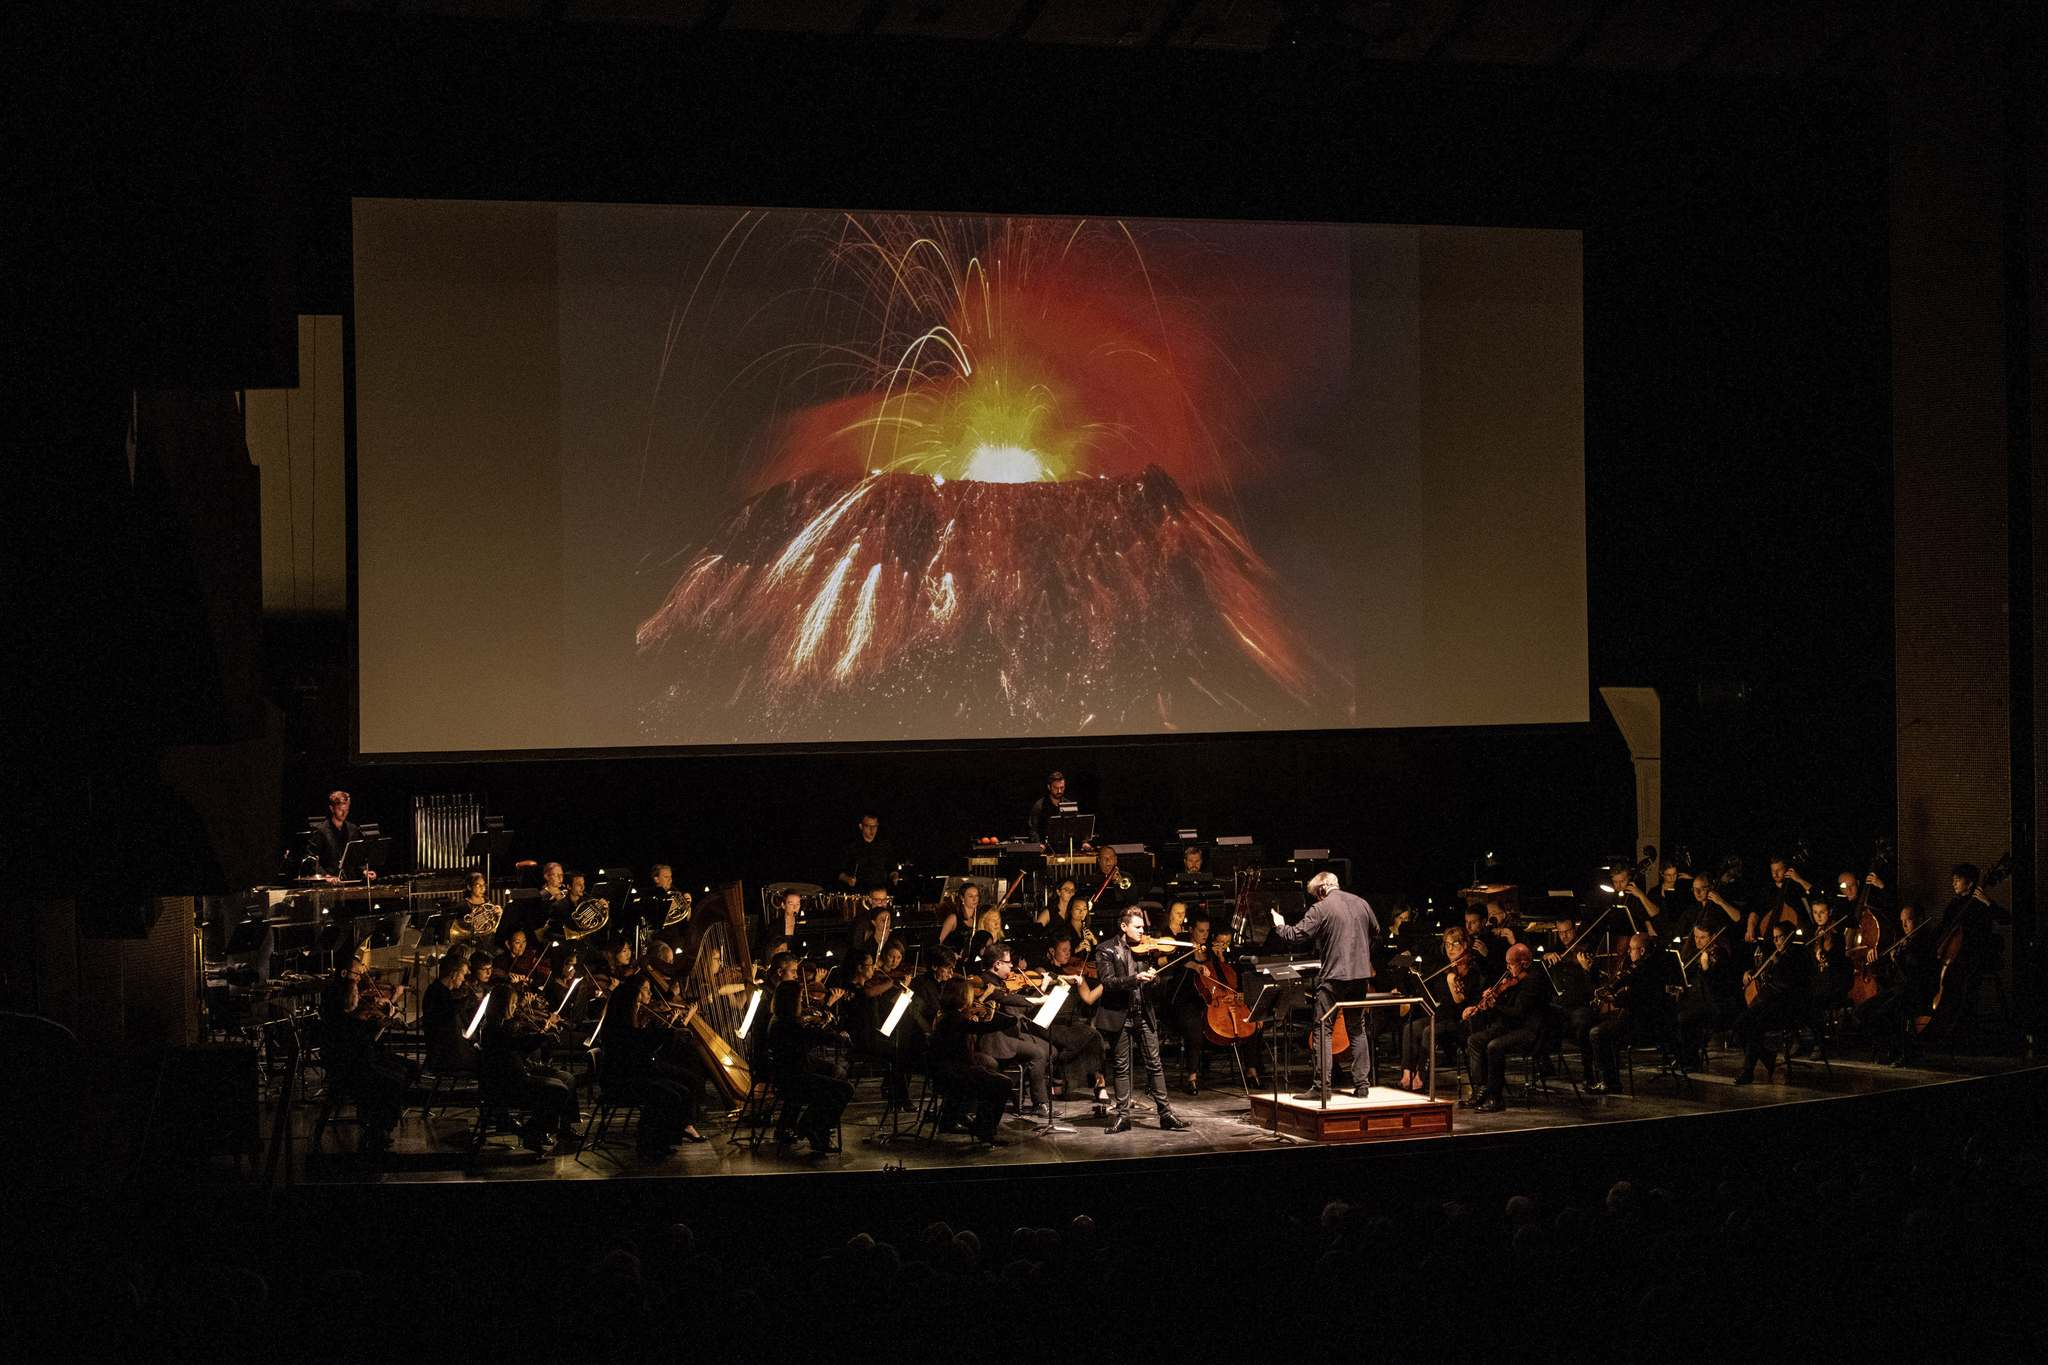 Soloist Alexandre De Costa performs Volcano, the first of three parts of Micheal Daugherty's 3 part composition, Fire and Blood with the Winnipeg Symphony Orchestra Saturday night as part of the Winnipeg New Music Festival. (Mike Sudoma / Winnipeg Free Press)</p>